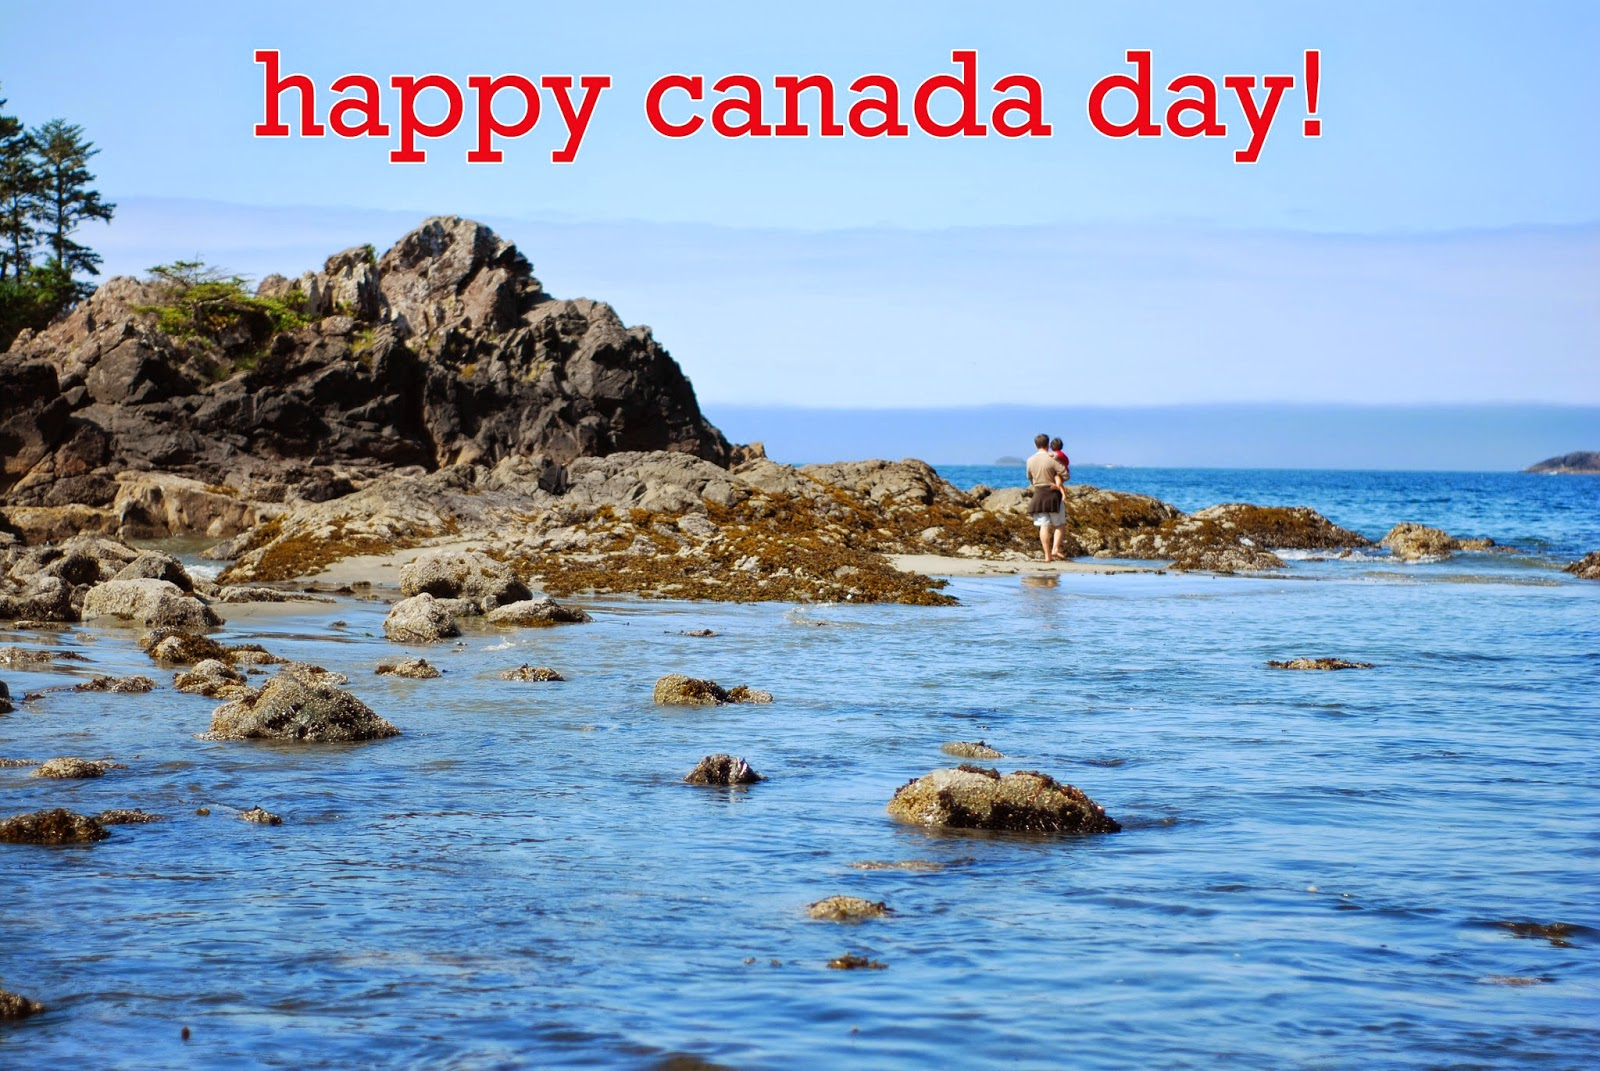 mackenzie beach in tofino british columbia. happy canada day.